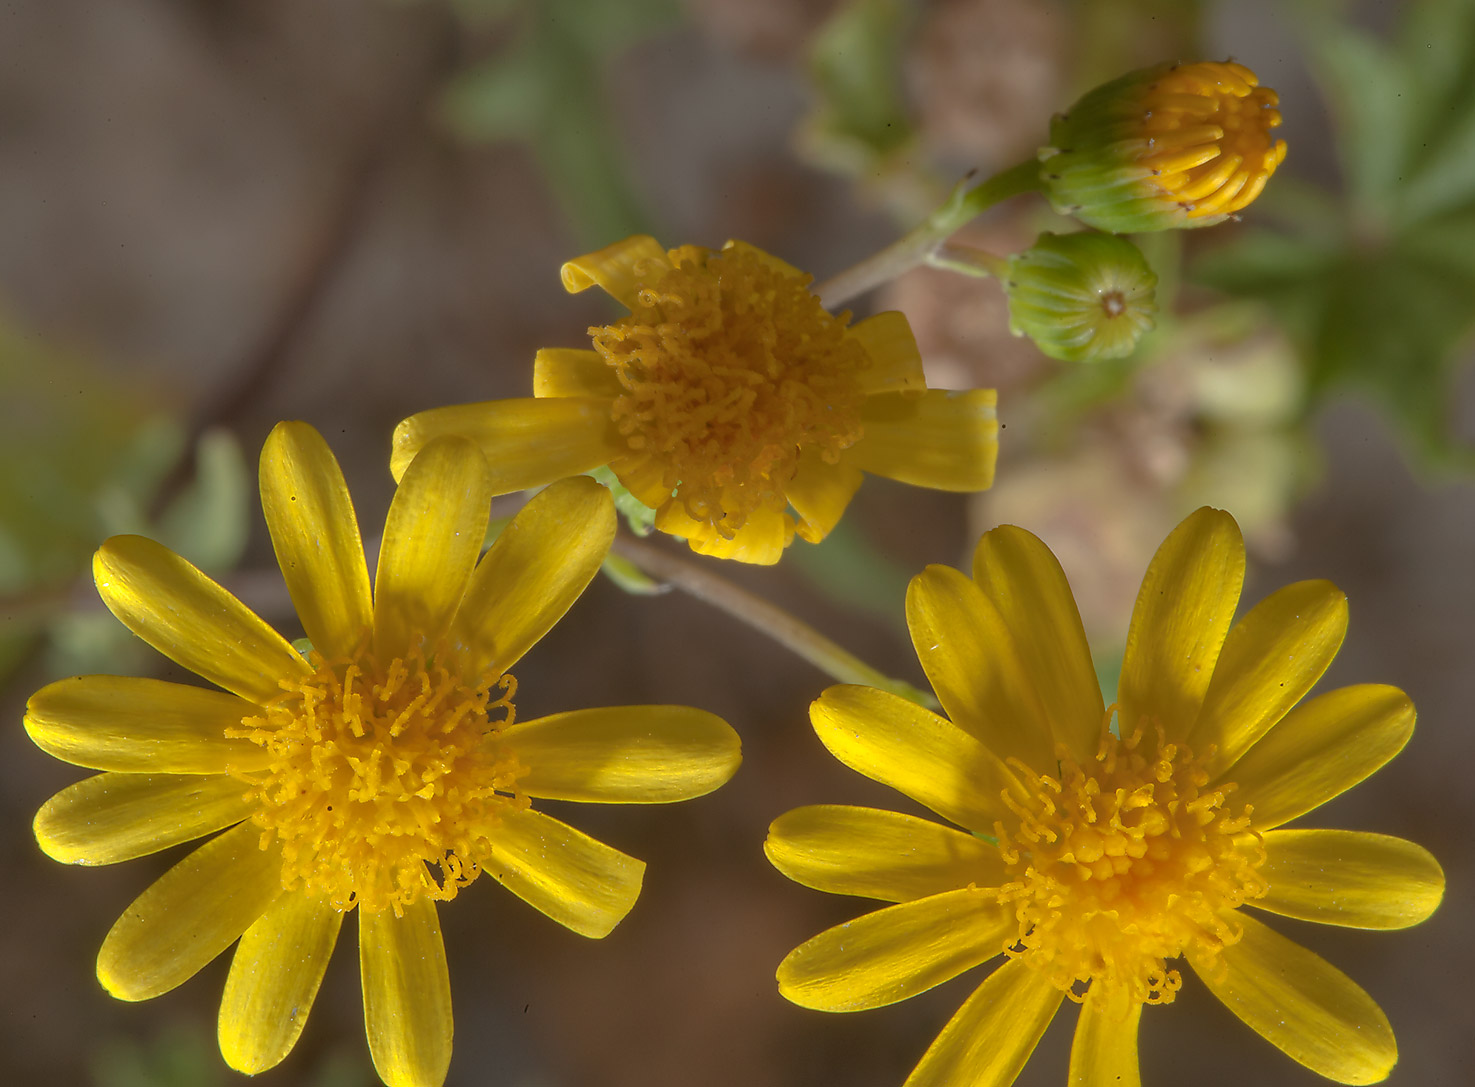 Buck's horn groundsel (Senecio glaucus, mureer...north from Dukhan in western Qatar